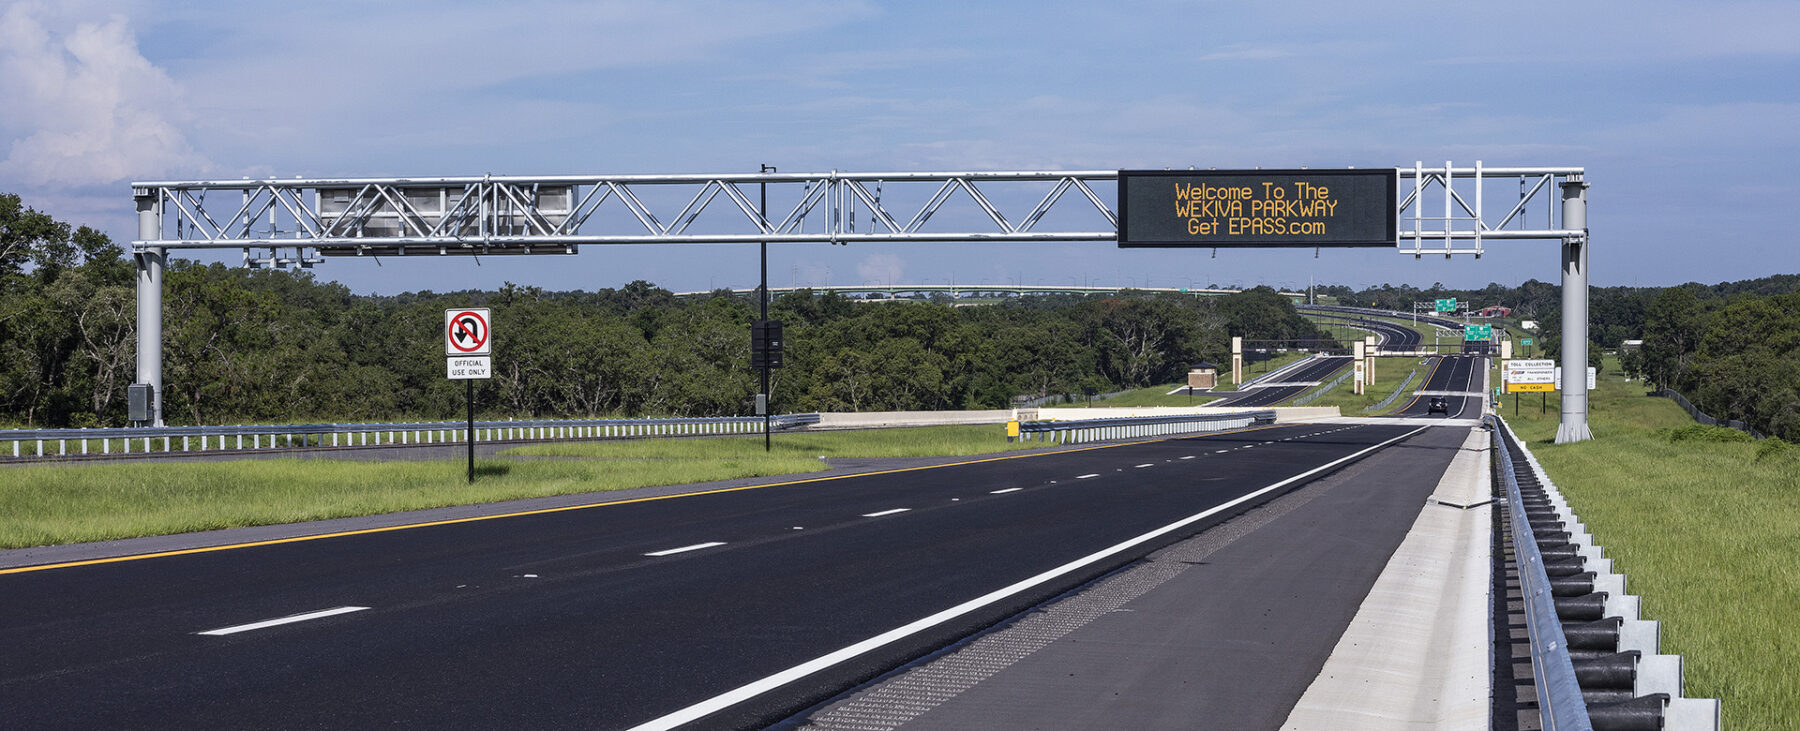 Central Florida Expressway Authority message board showing message: Welcome to the Wekiva Parkway. GetEPASS.com